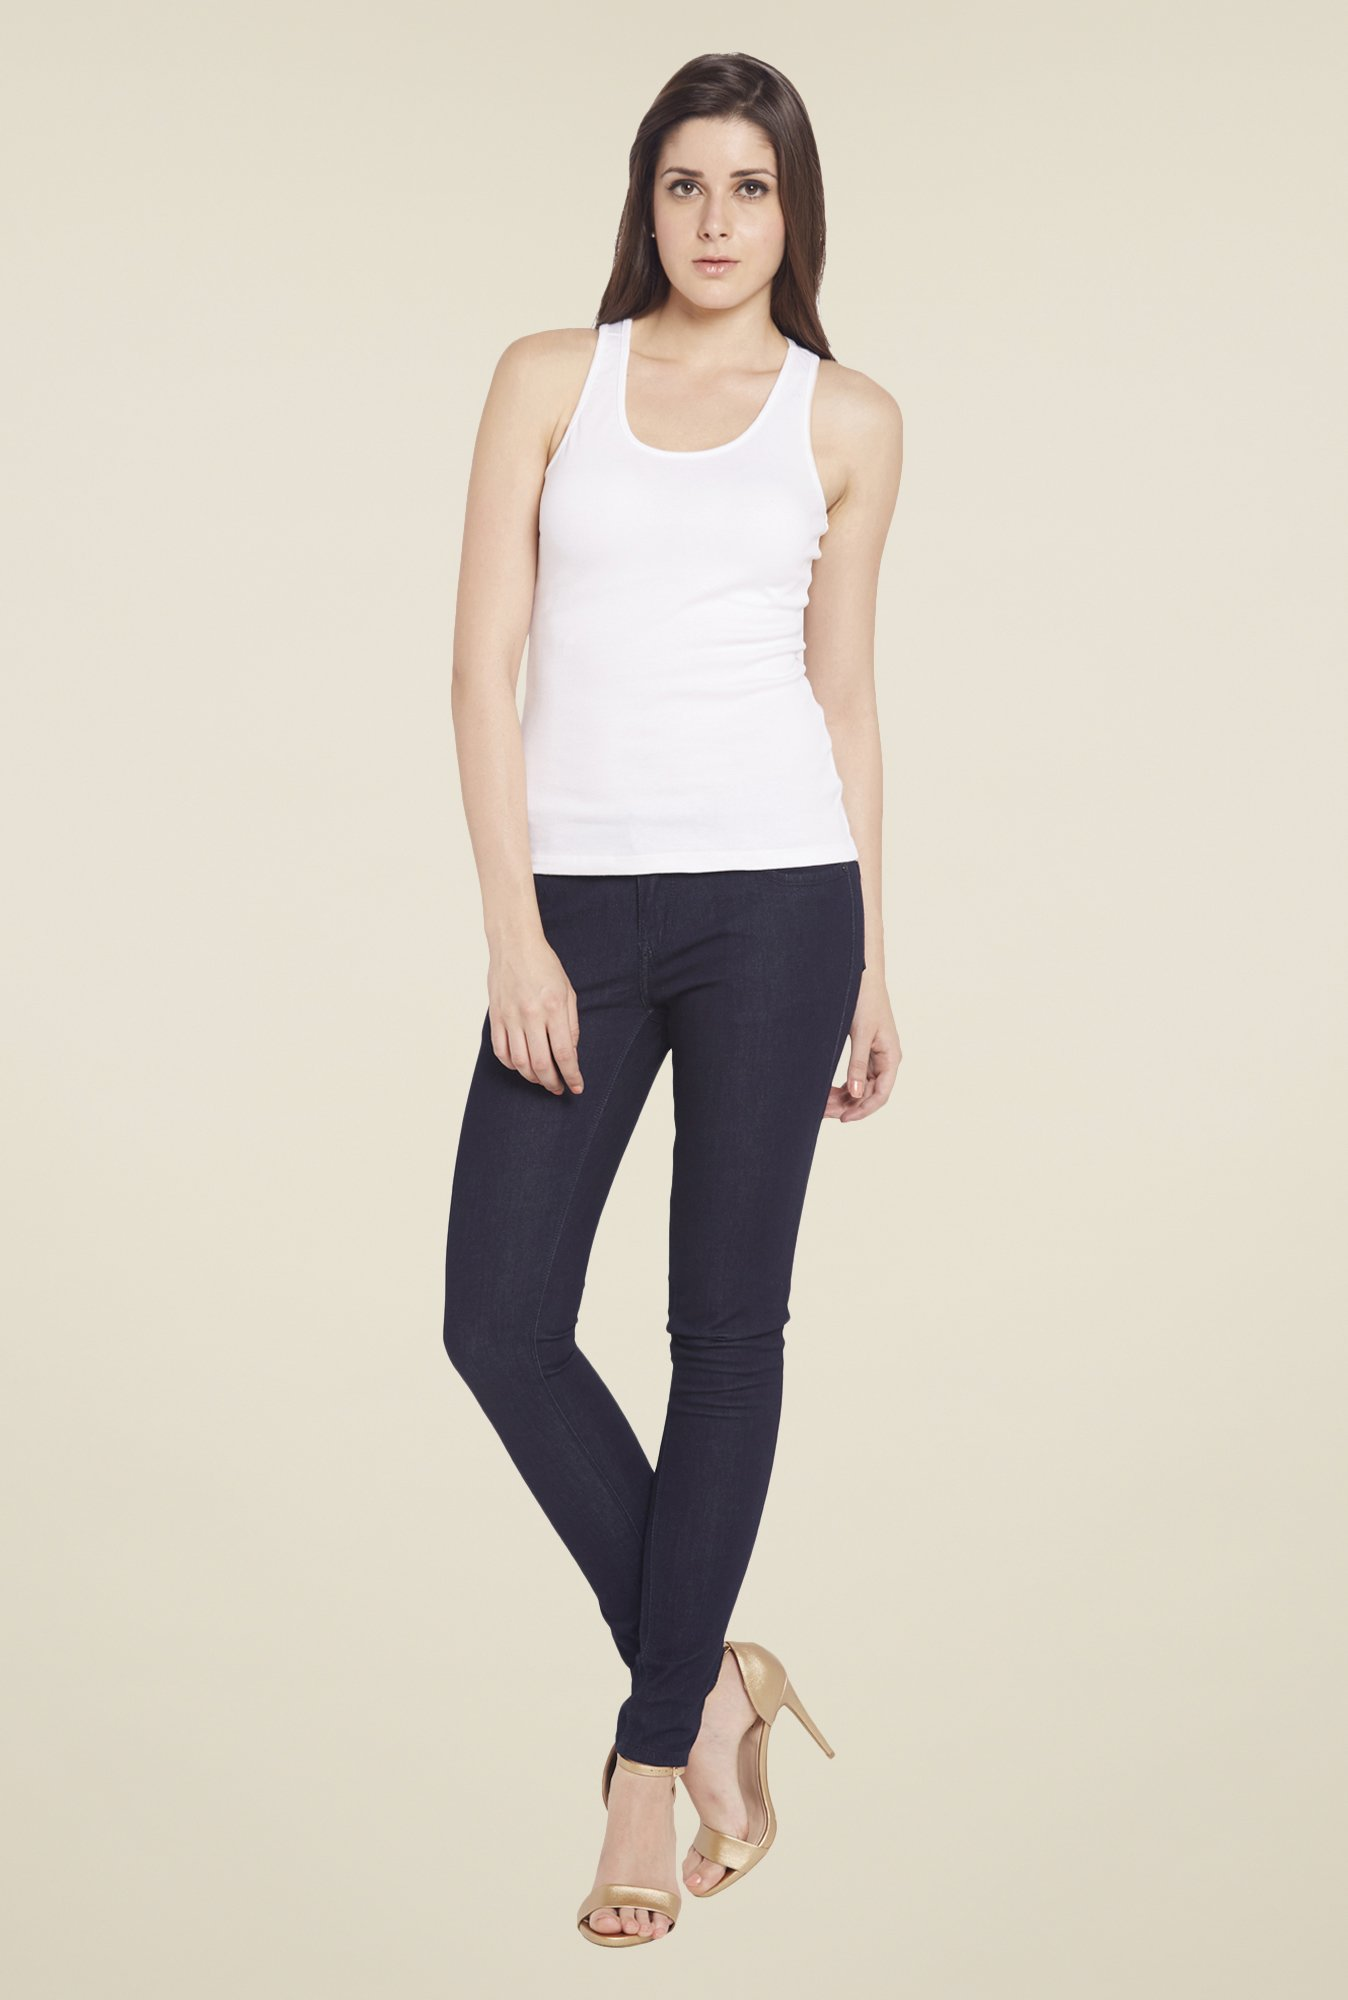 Globus White Solid Tank Top